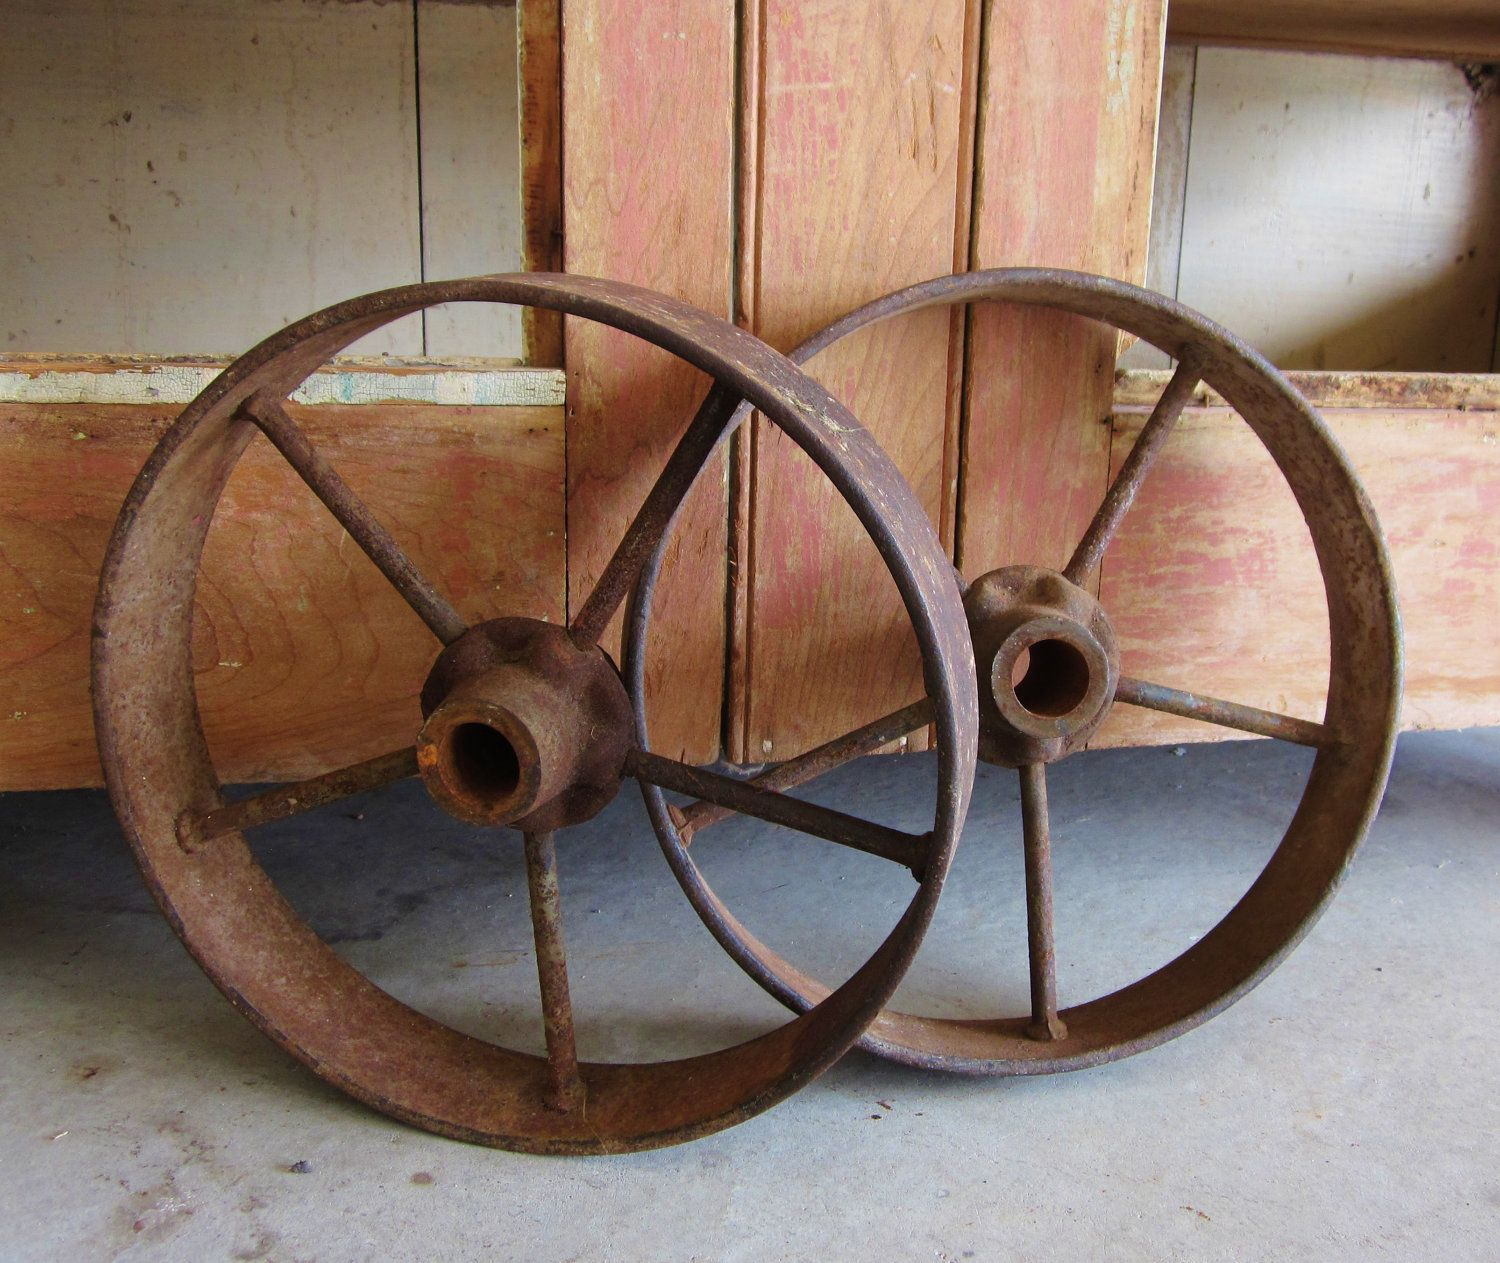 Antique Cast Iron Wagon Wheels Rustic Country Western Primitive